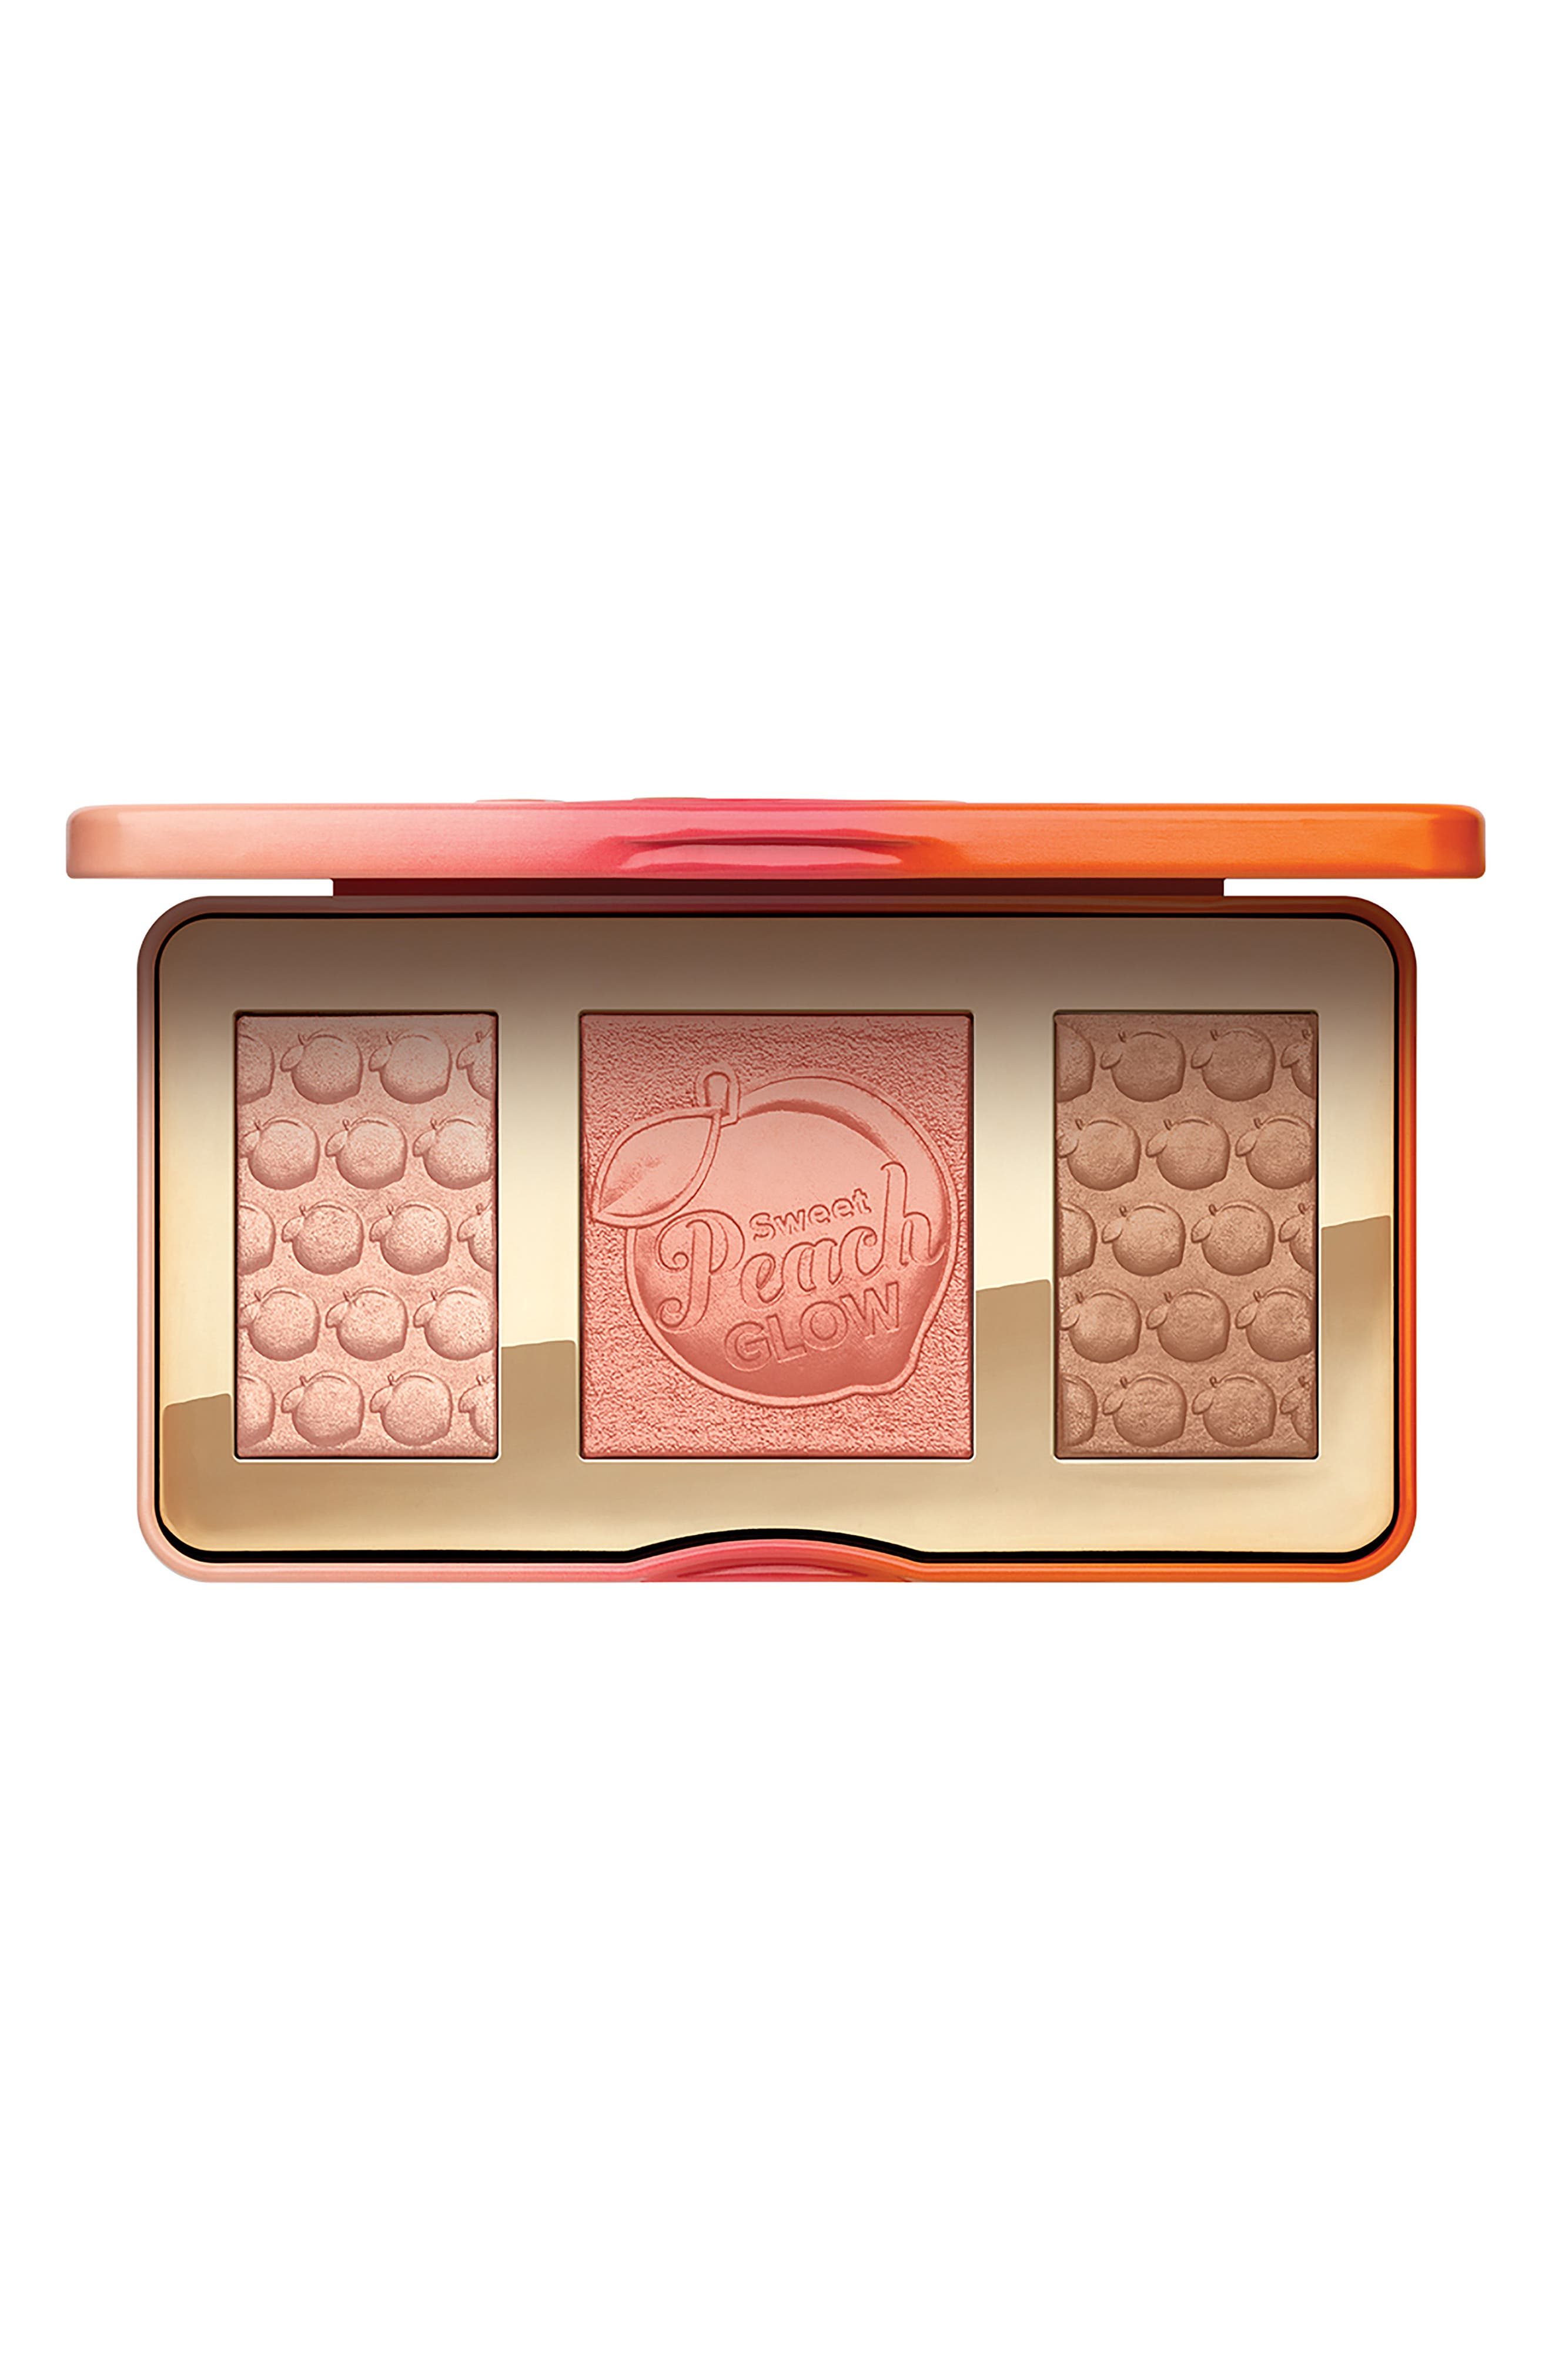 Sweet Peach Glow Highlighting Palette,                             Alternate thumbnail 4, color,                             No Color